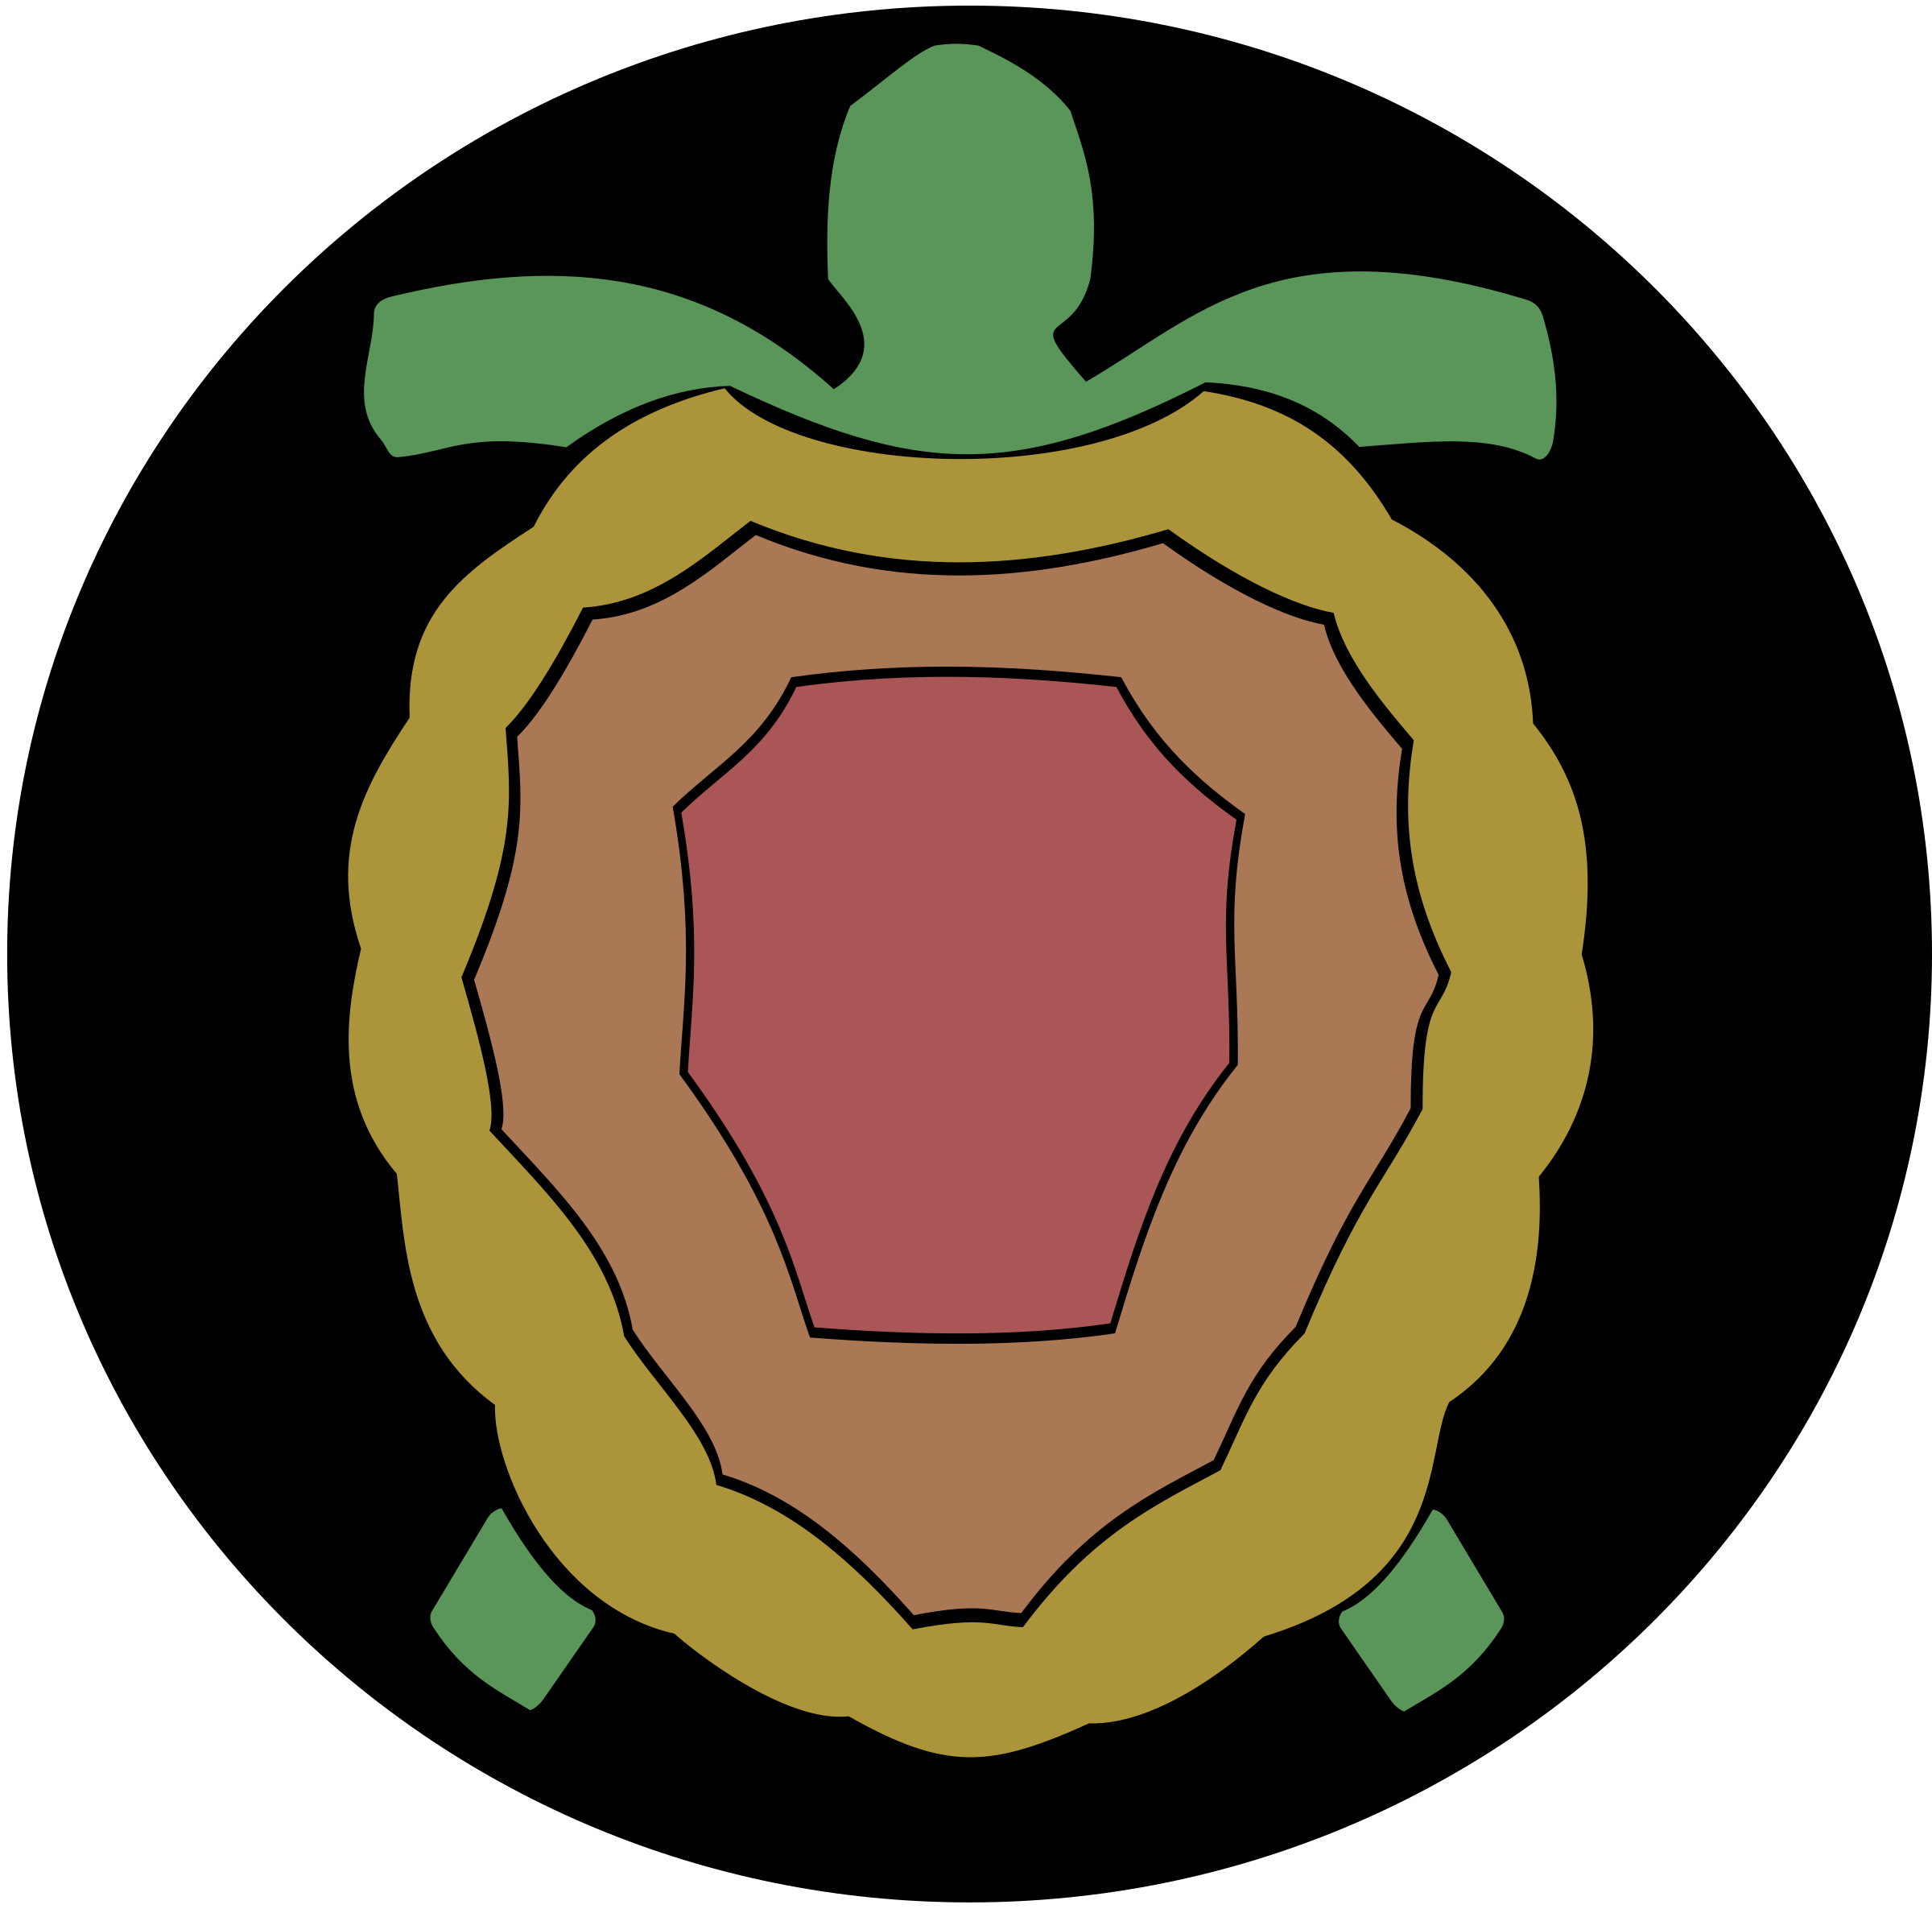 Turtle by haelstrom